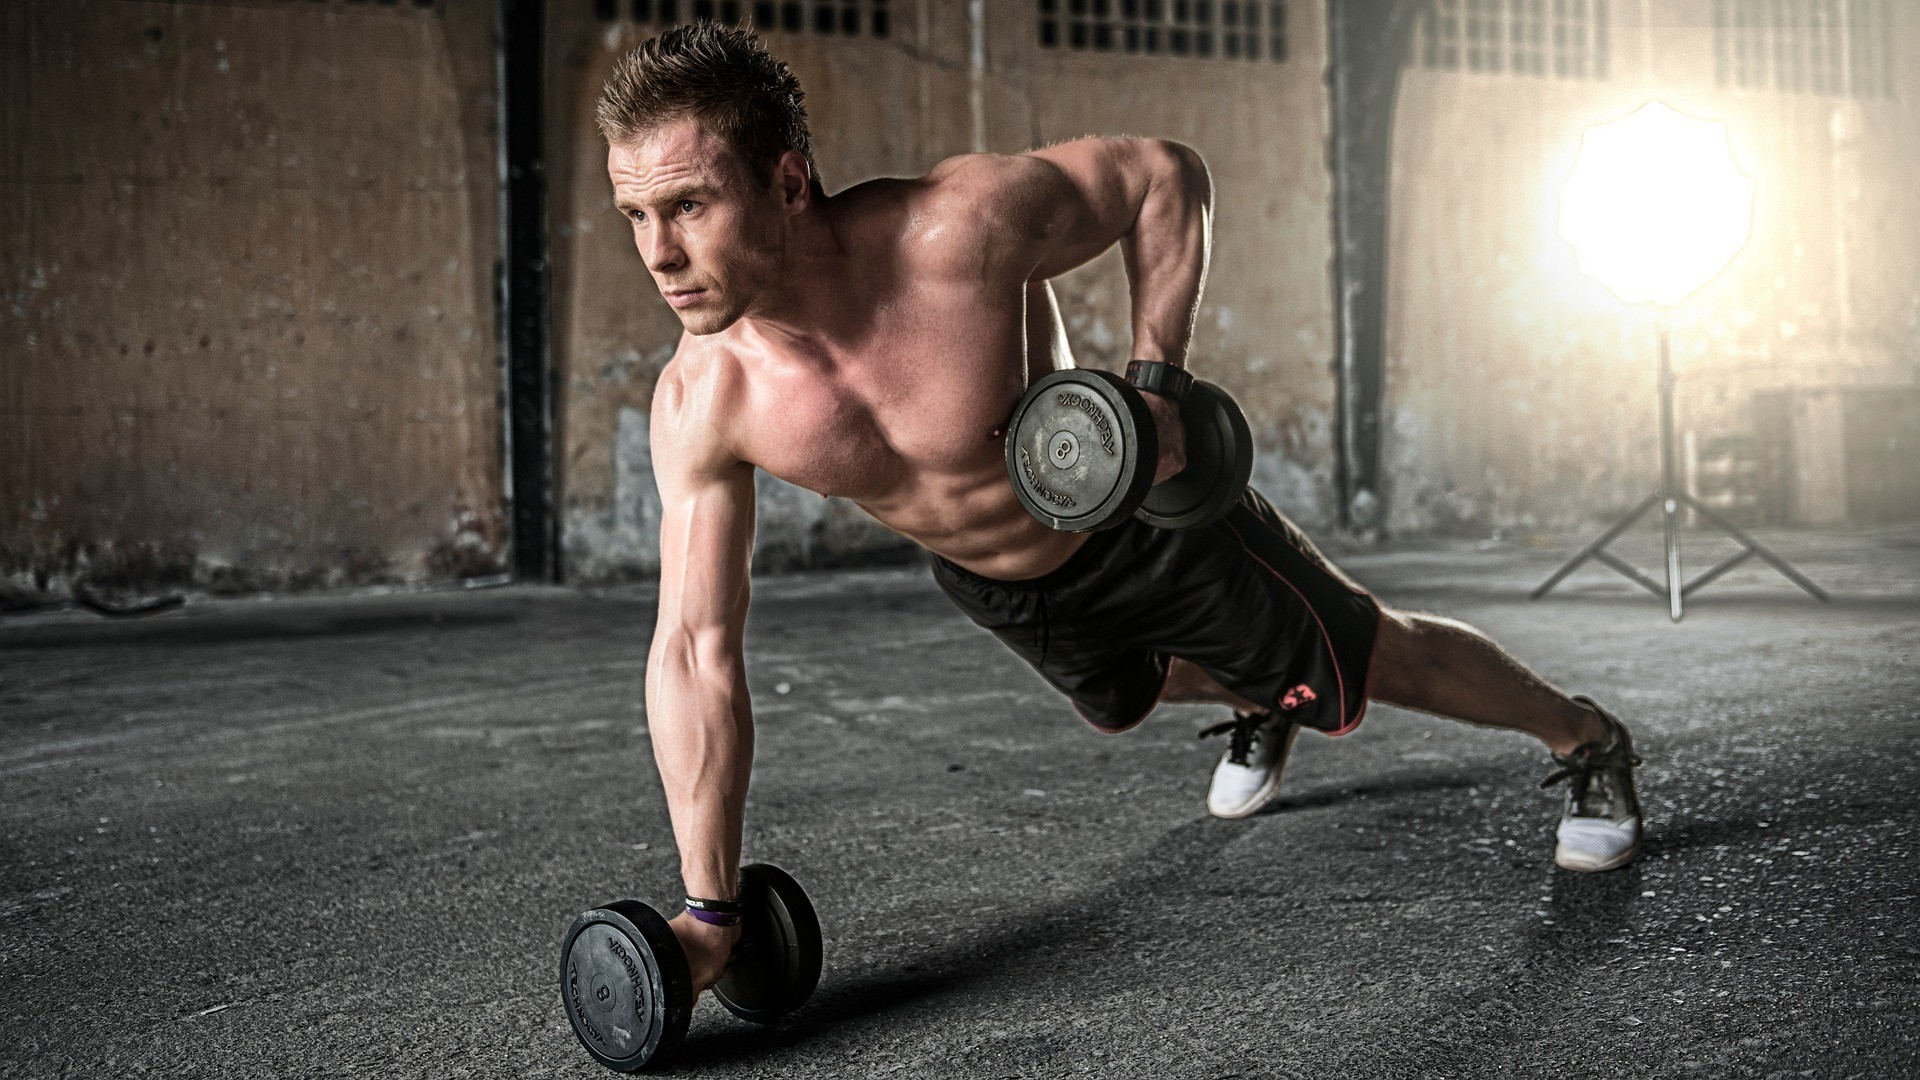 Man doing push-ups on dumbbells, training his core stability in the process